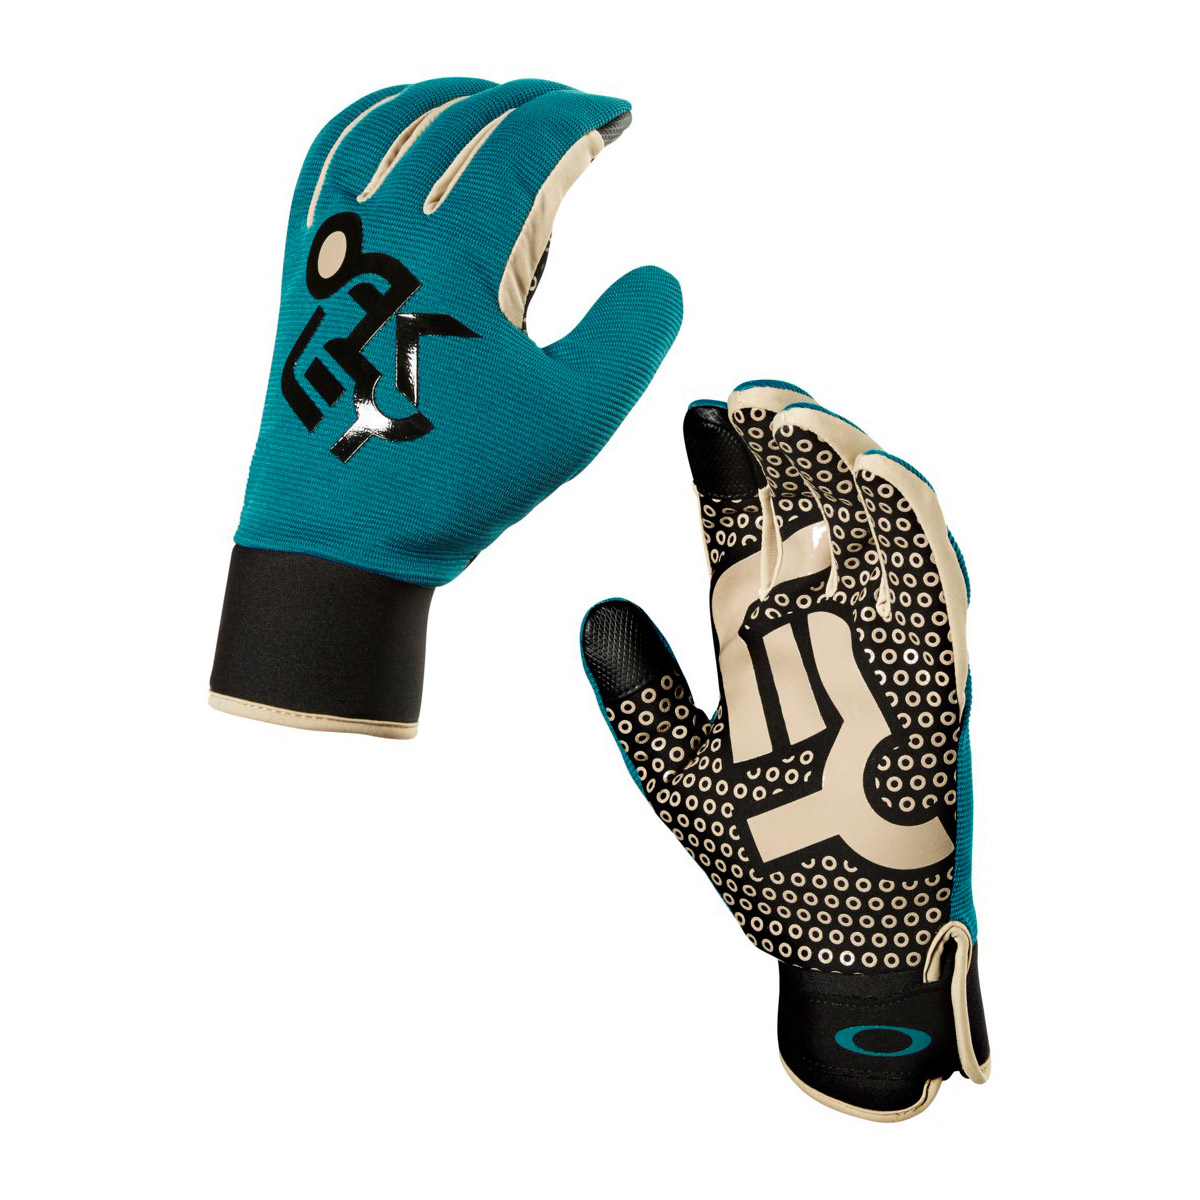 Mens Gloves You Can Use Iphone